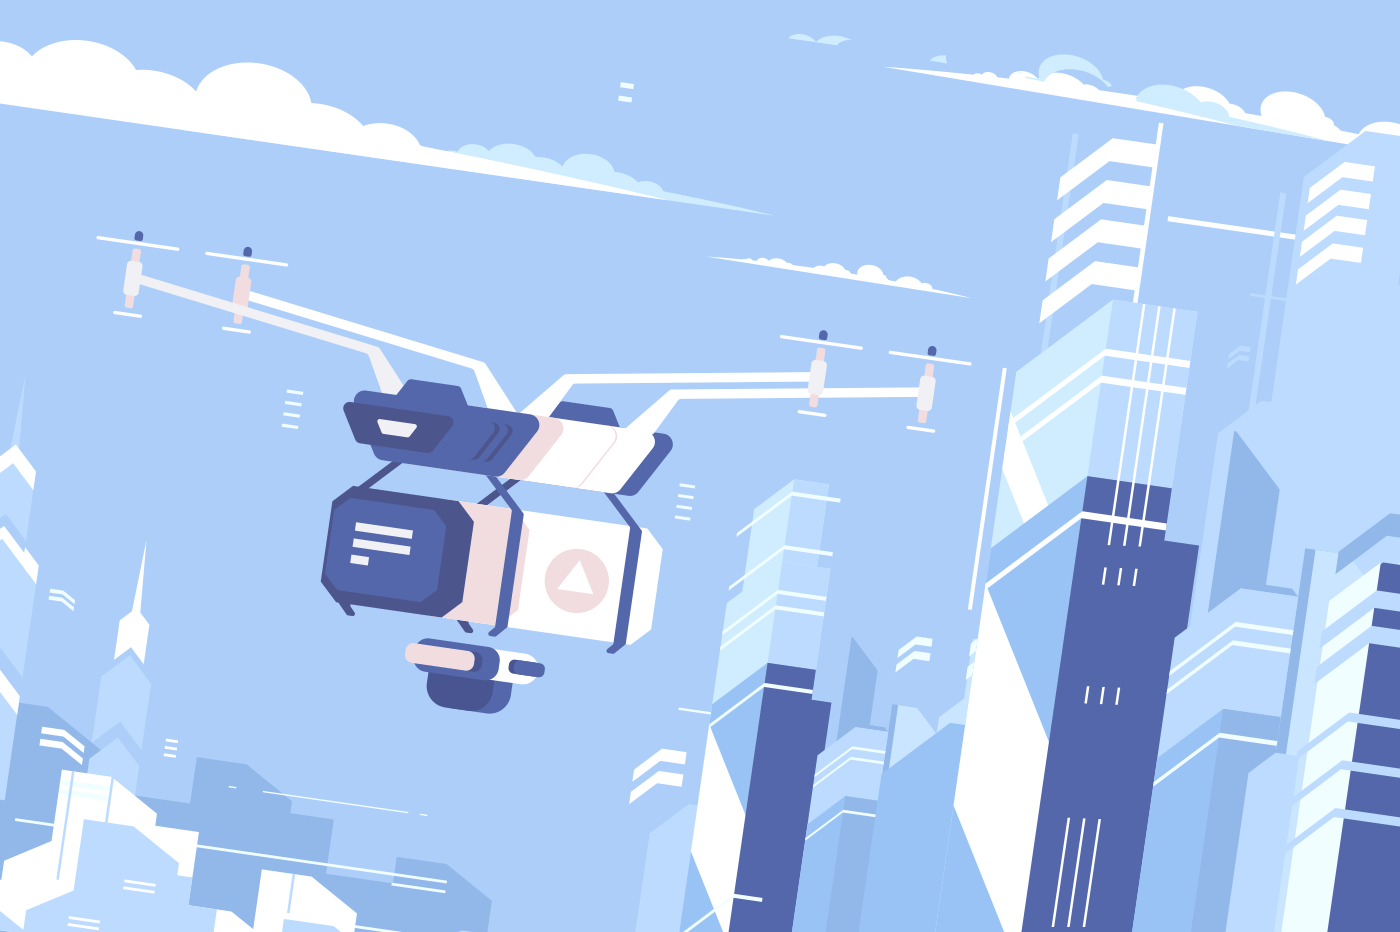 Unmanned drone courier fly delivers parcel to city. Vector illustration